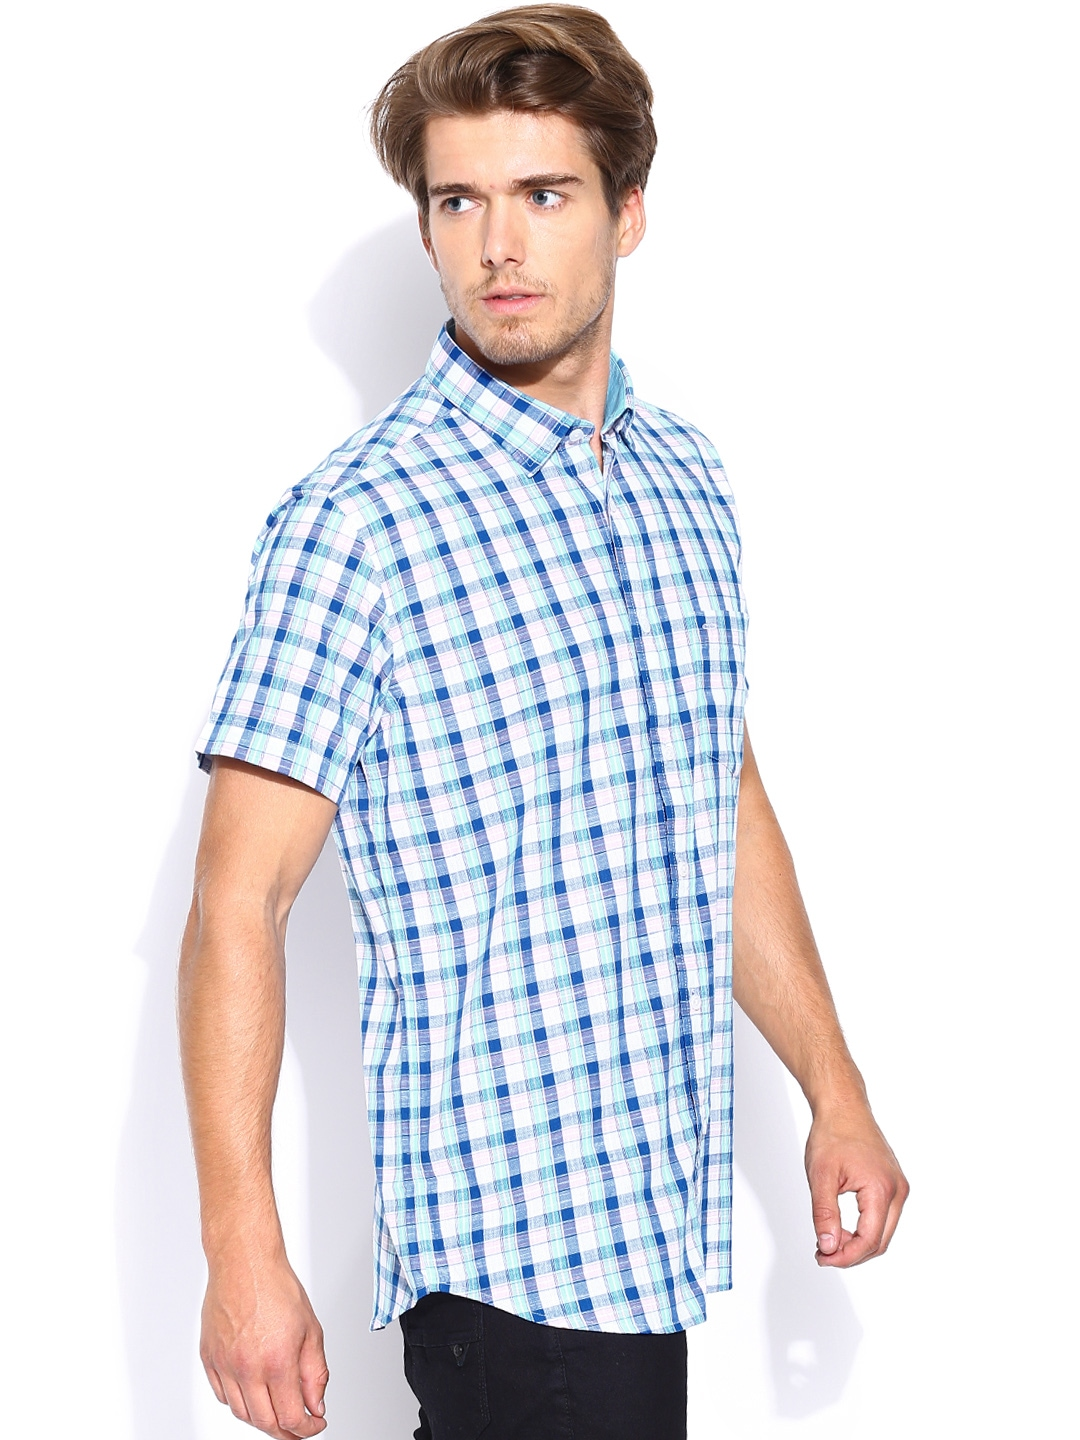 Myntra Colorplus White Blue Checked Tailored Fit Smart